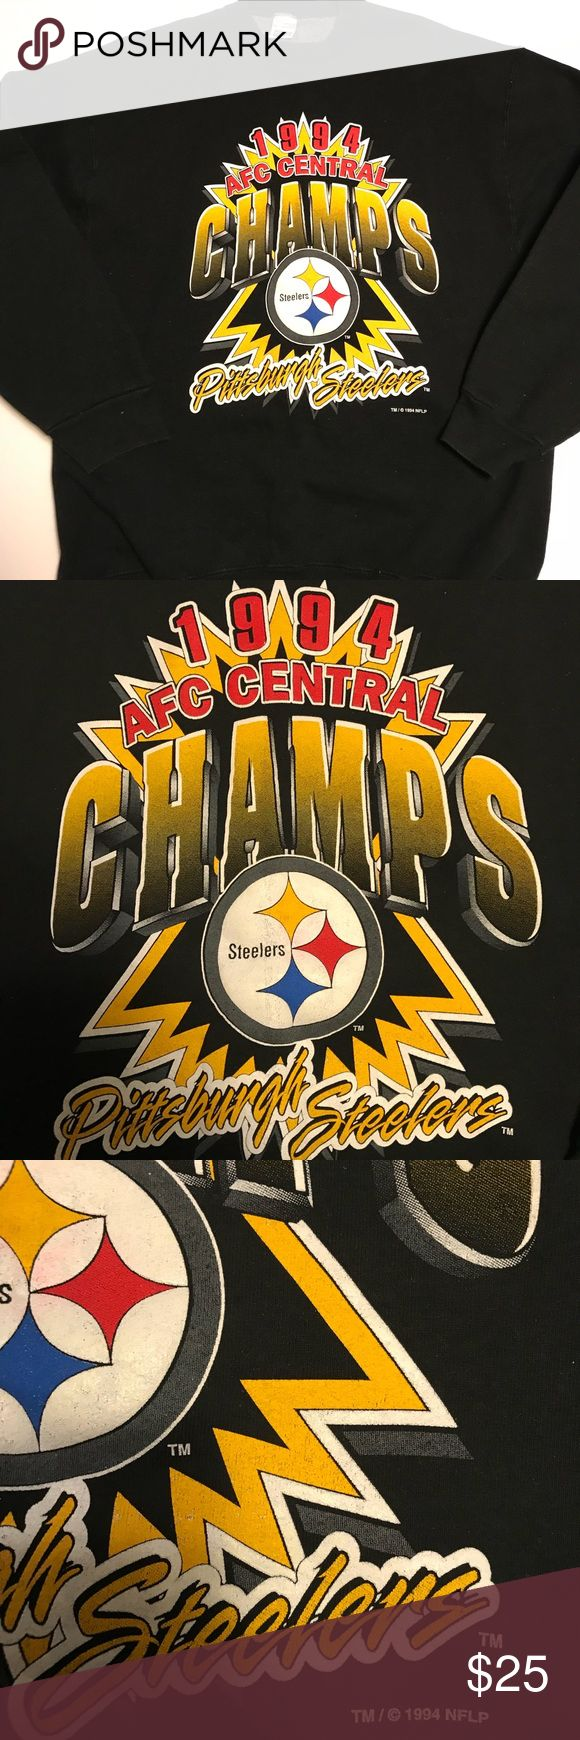 Vintage 1994 Pittsburgh Steelers Division Champs Item is in great condition for being for being 23 years old. With very few flaws in the graphics, it's a must have for any Steelers fan. Let me know if you have any questions. Vintage Sweaters Crewneck